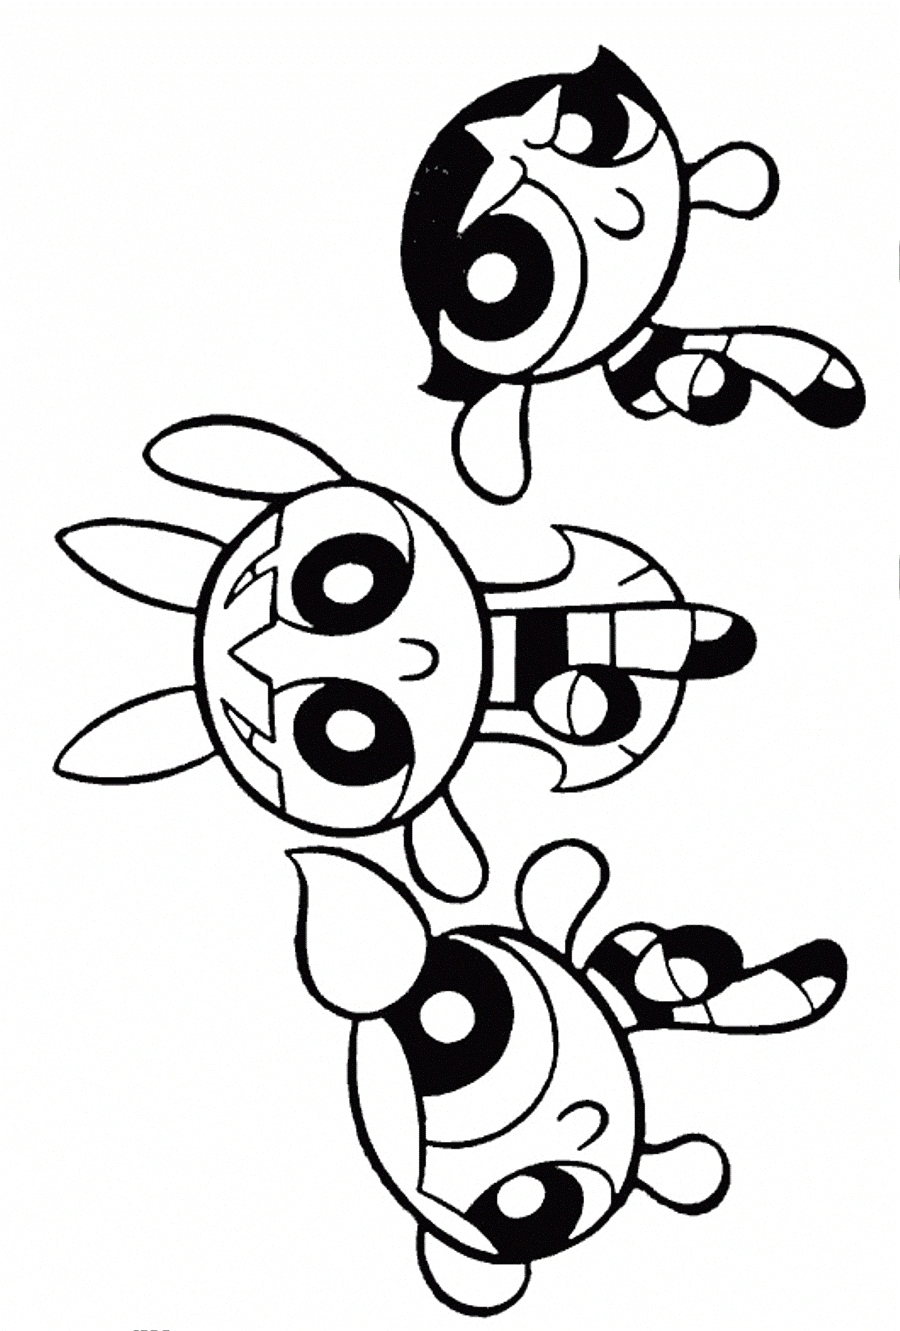 Free Coloring Pages to Print for Girls Free Printable Powerpuff Girls Coloring Pages for Kids